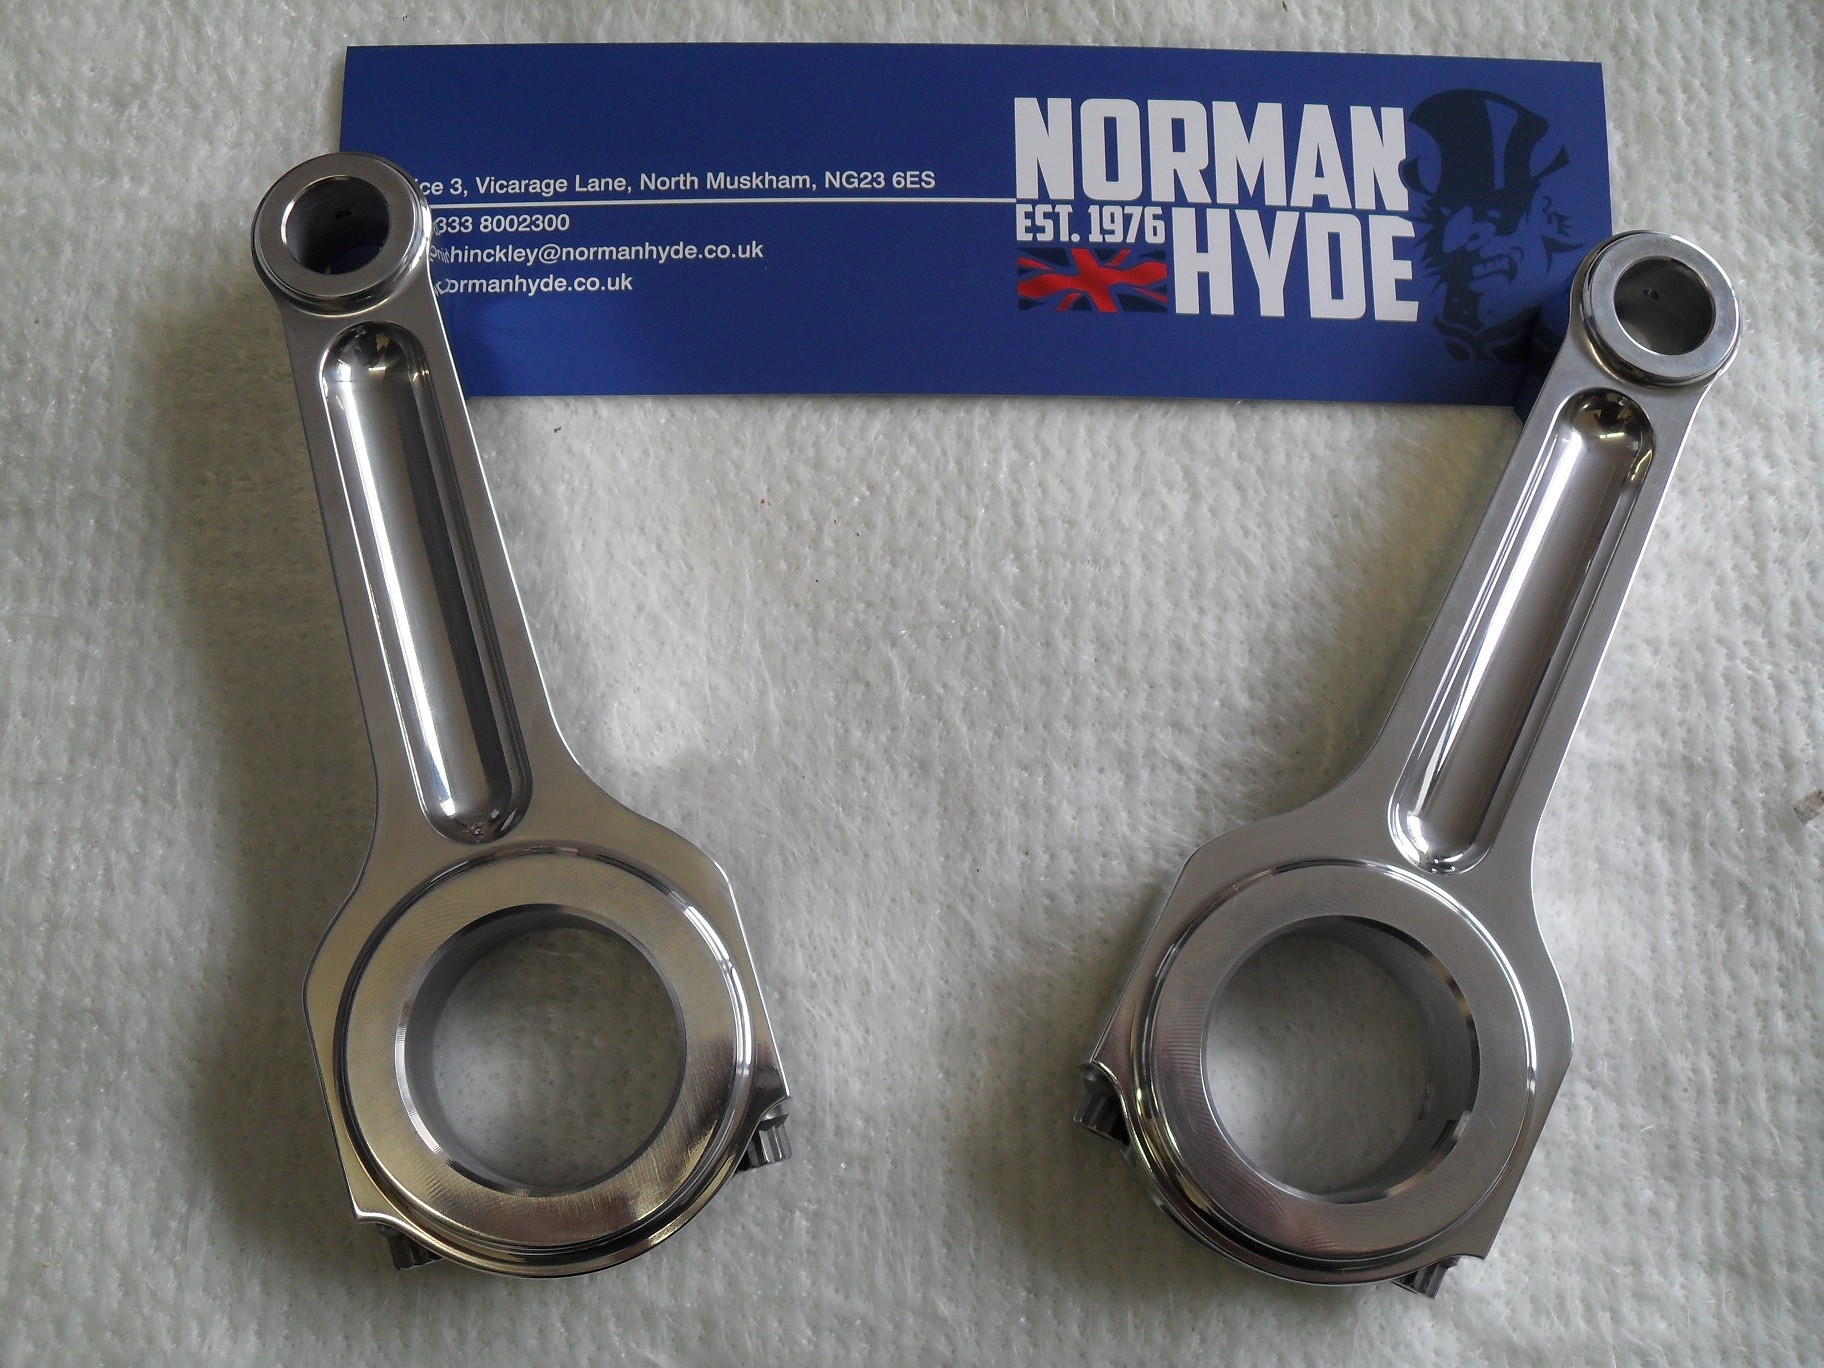 HI-STRENGTH CONNECTING ROD PAIR